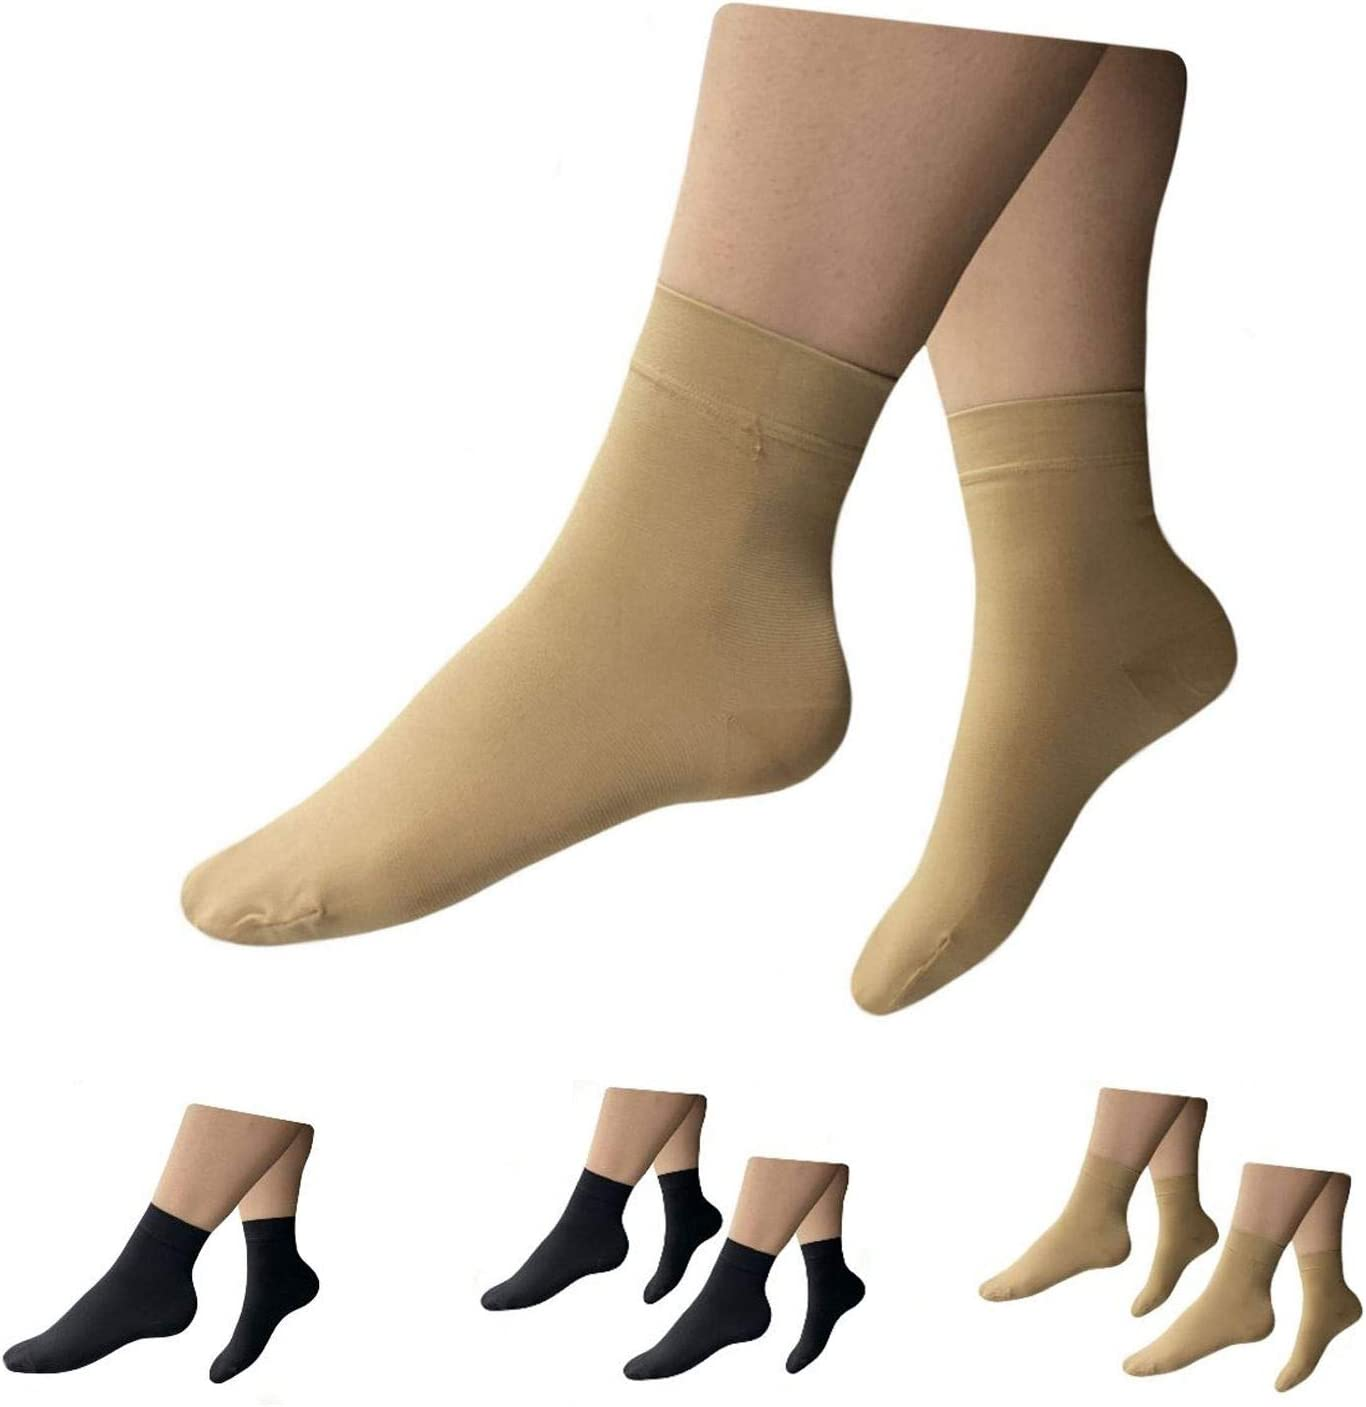 HealthyNees Popularity Free shipping anywhere in the nation Closed Toe 15-20 mmHg W Compression Circulation Foot